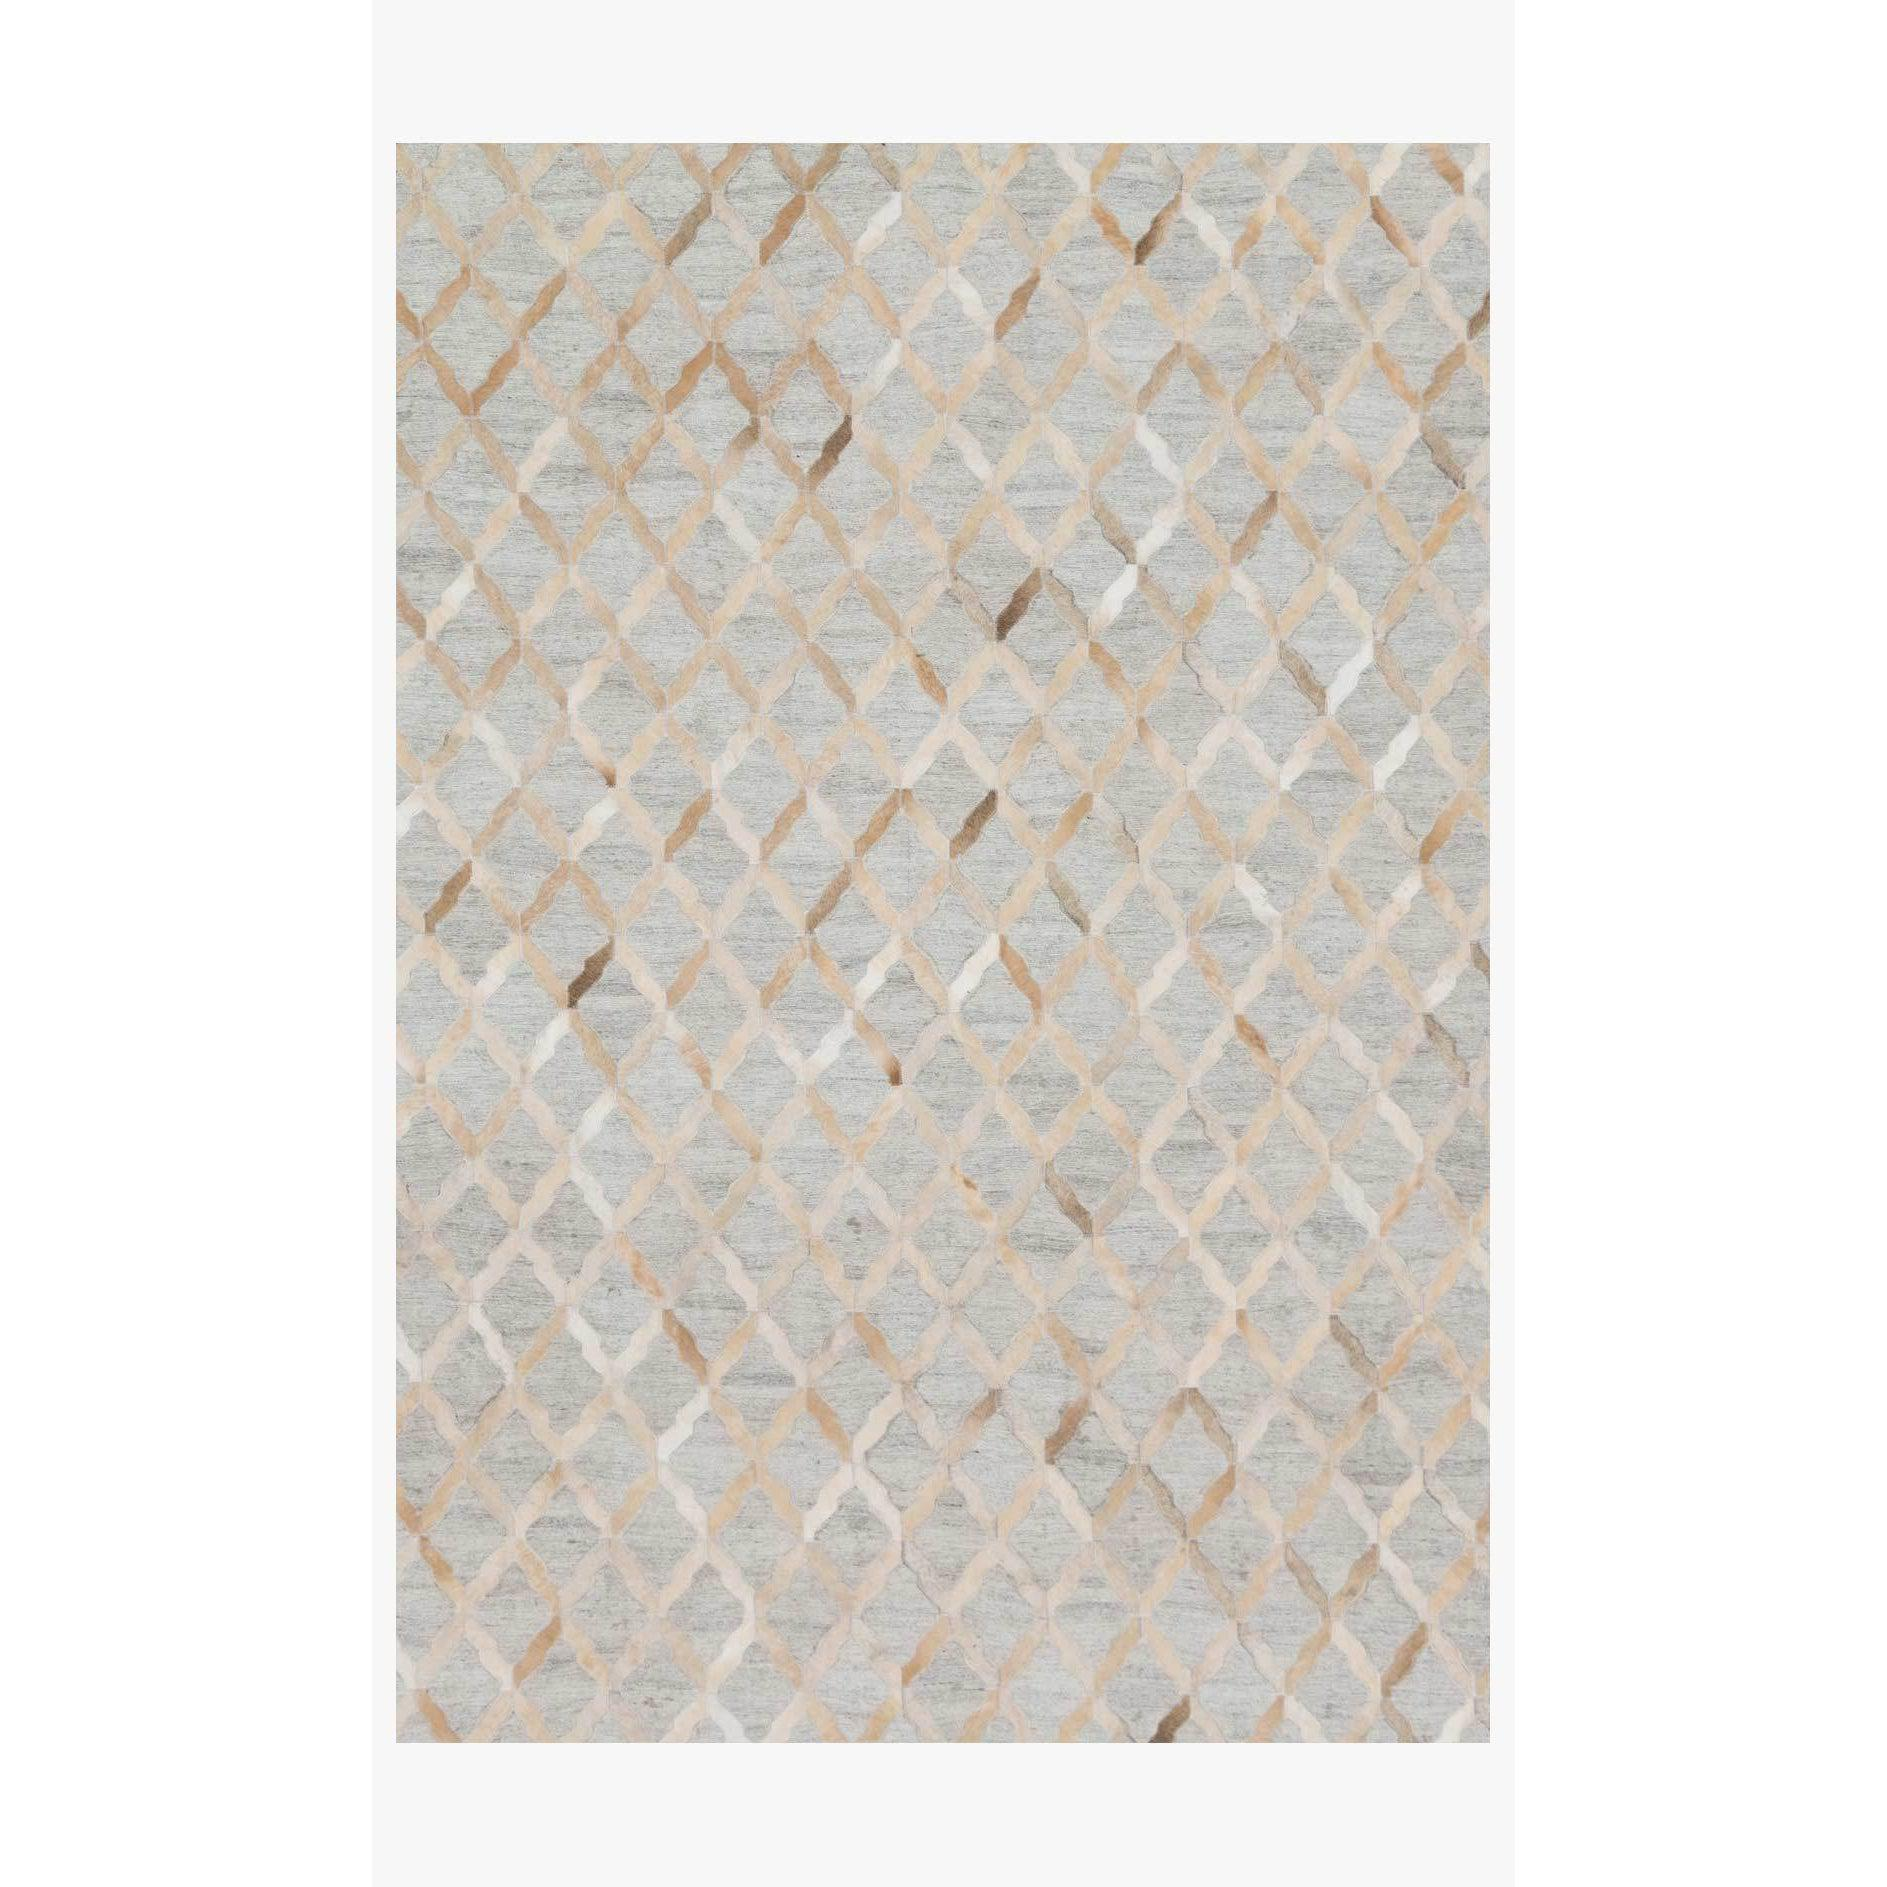 Dorado Rug by Loloi Rugs - DB-04 - Grey / Sand